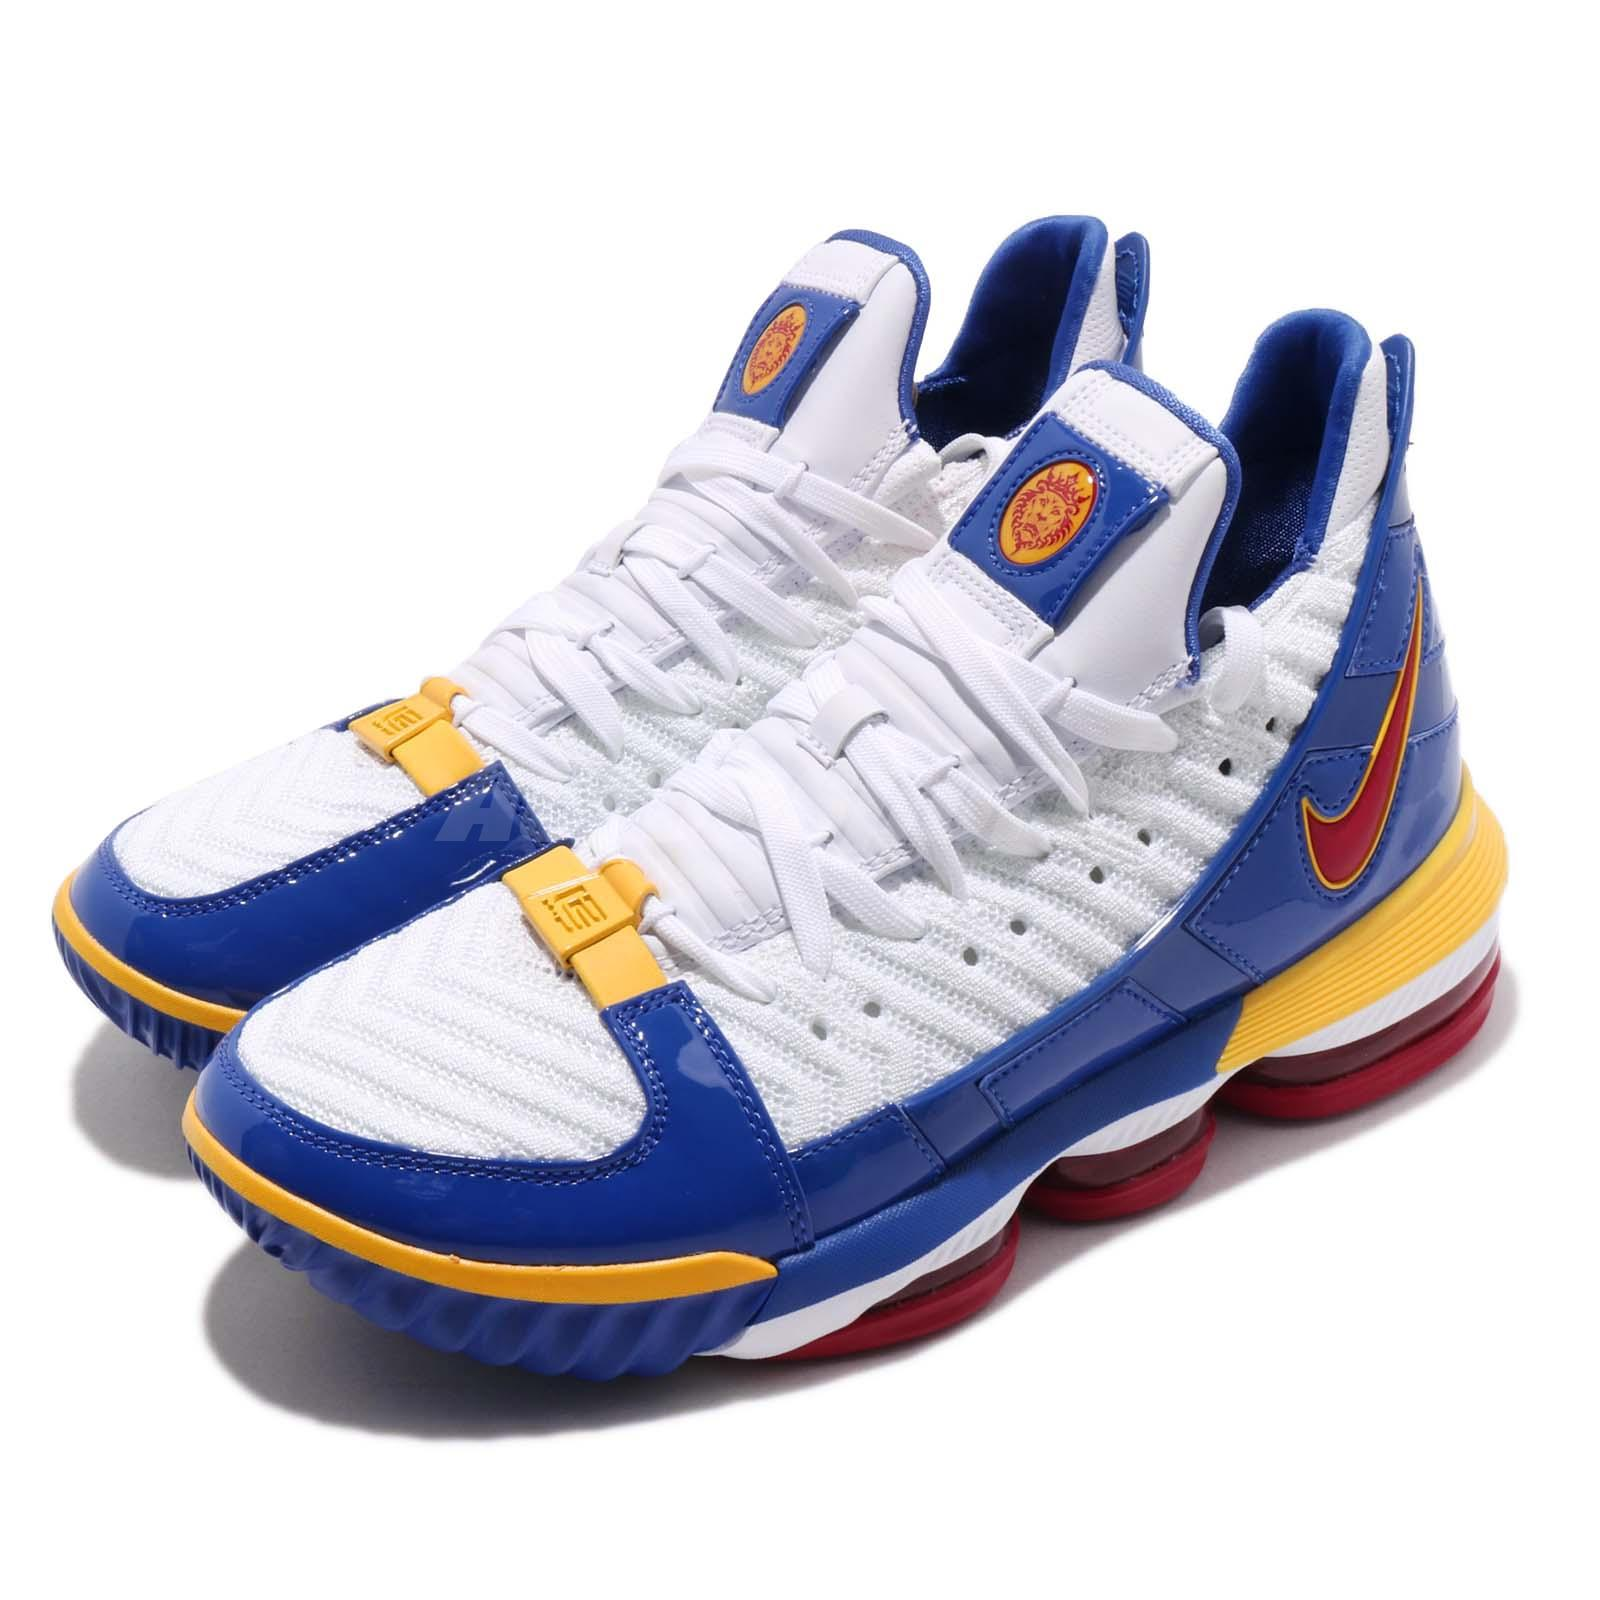 wholesale dealer 95b2c ce2ec Details about Nike Lebron XVI SB EP 16 King James LBJ SuperBron Superman  Men Shoes CD2450-100